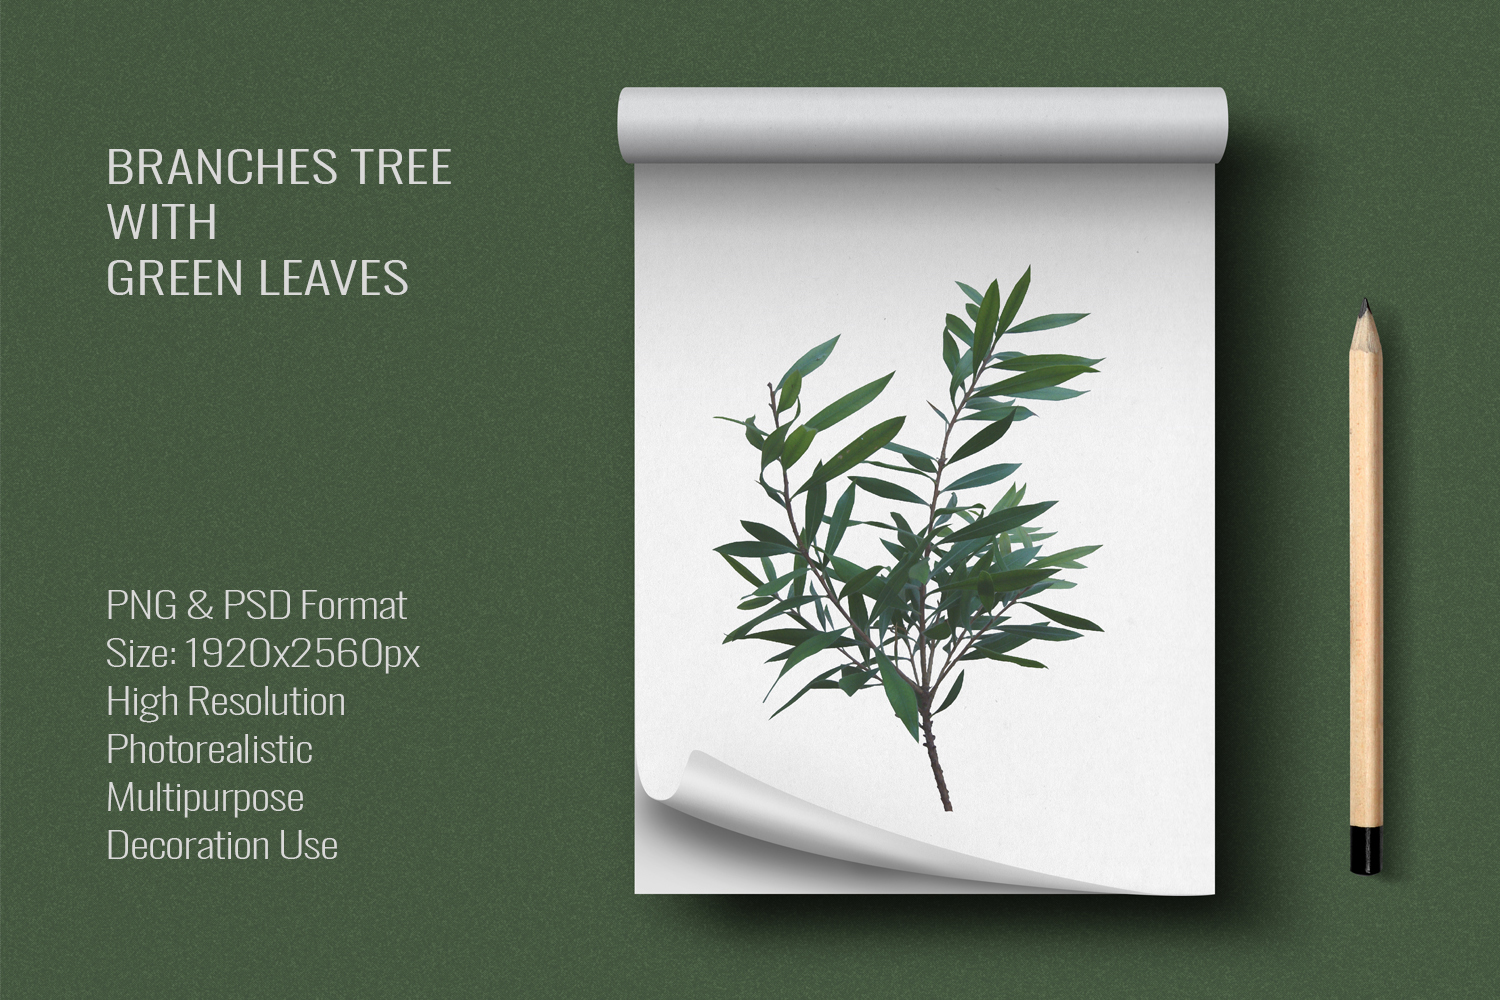 Three Branches Tree With Green Leaves PNG|PSD example image 6